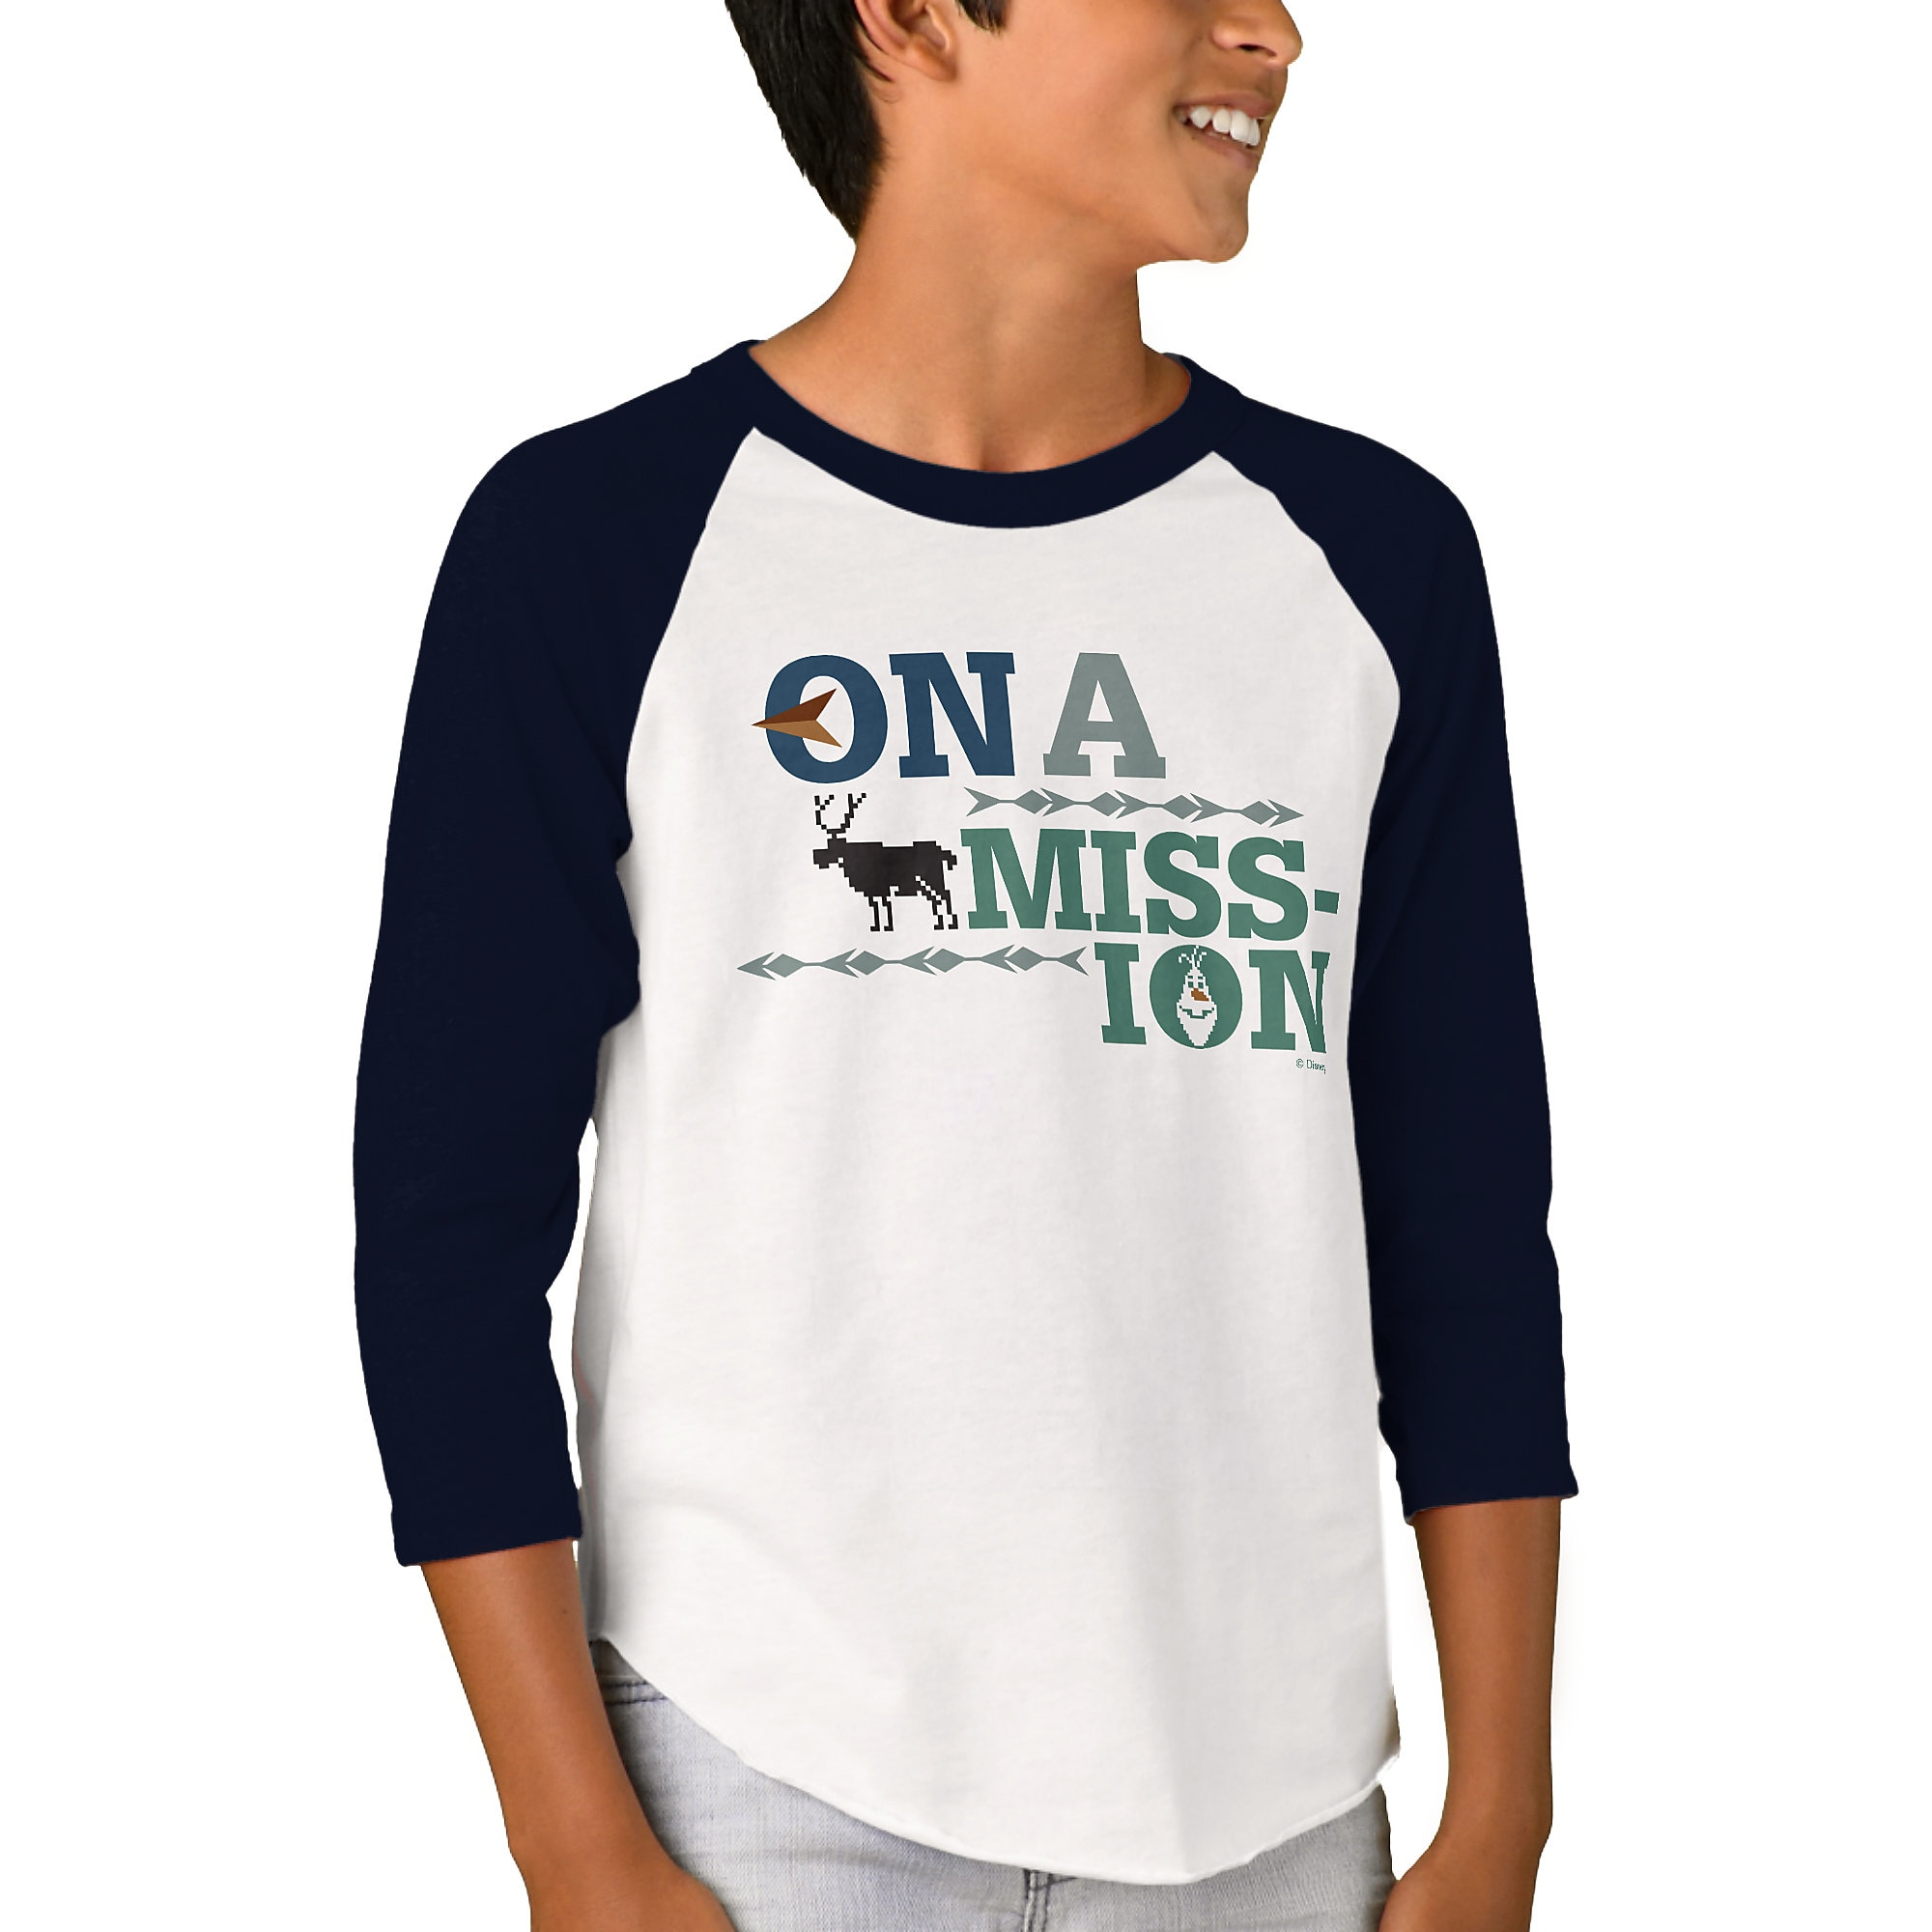 Olaf's Frozen Adventure Raglan T-Shirt for Kids - Customizable